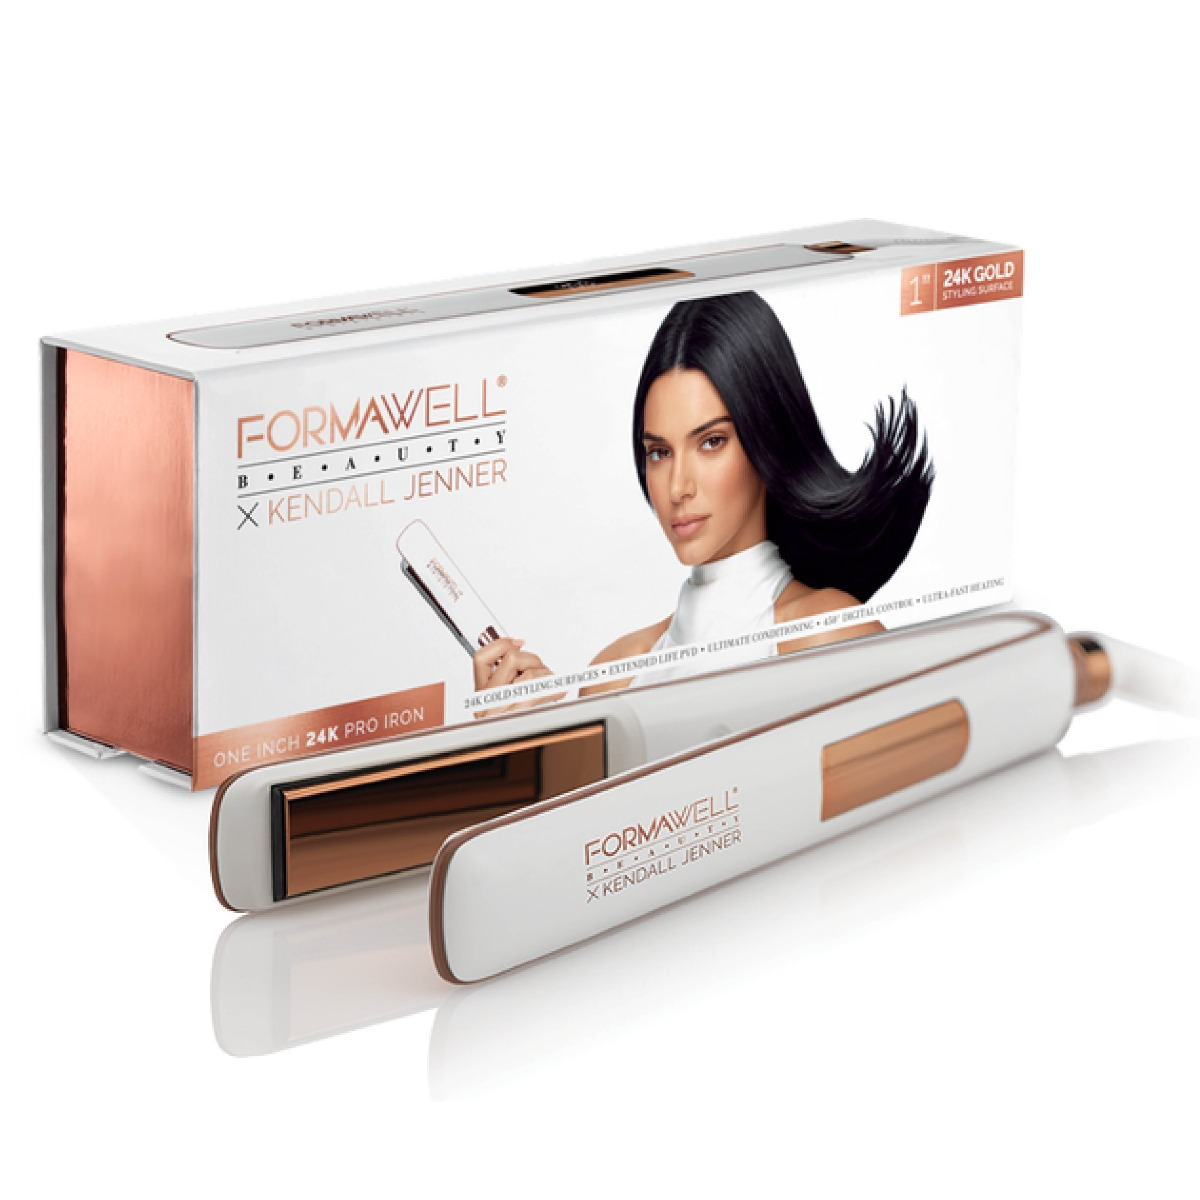 An image of Formawell Beauty X Kendall Jenner Gold Pro Hair Straightener